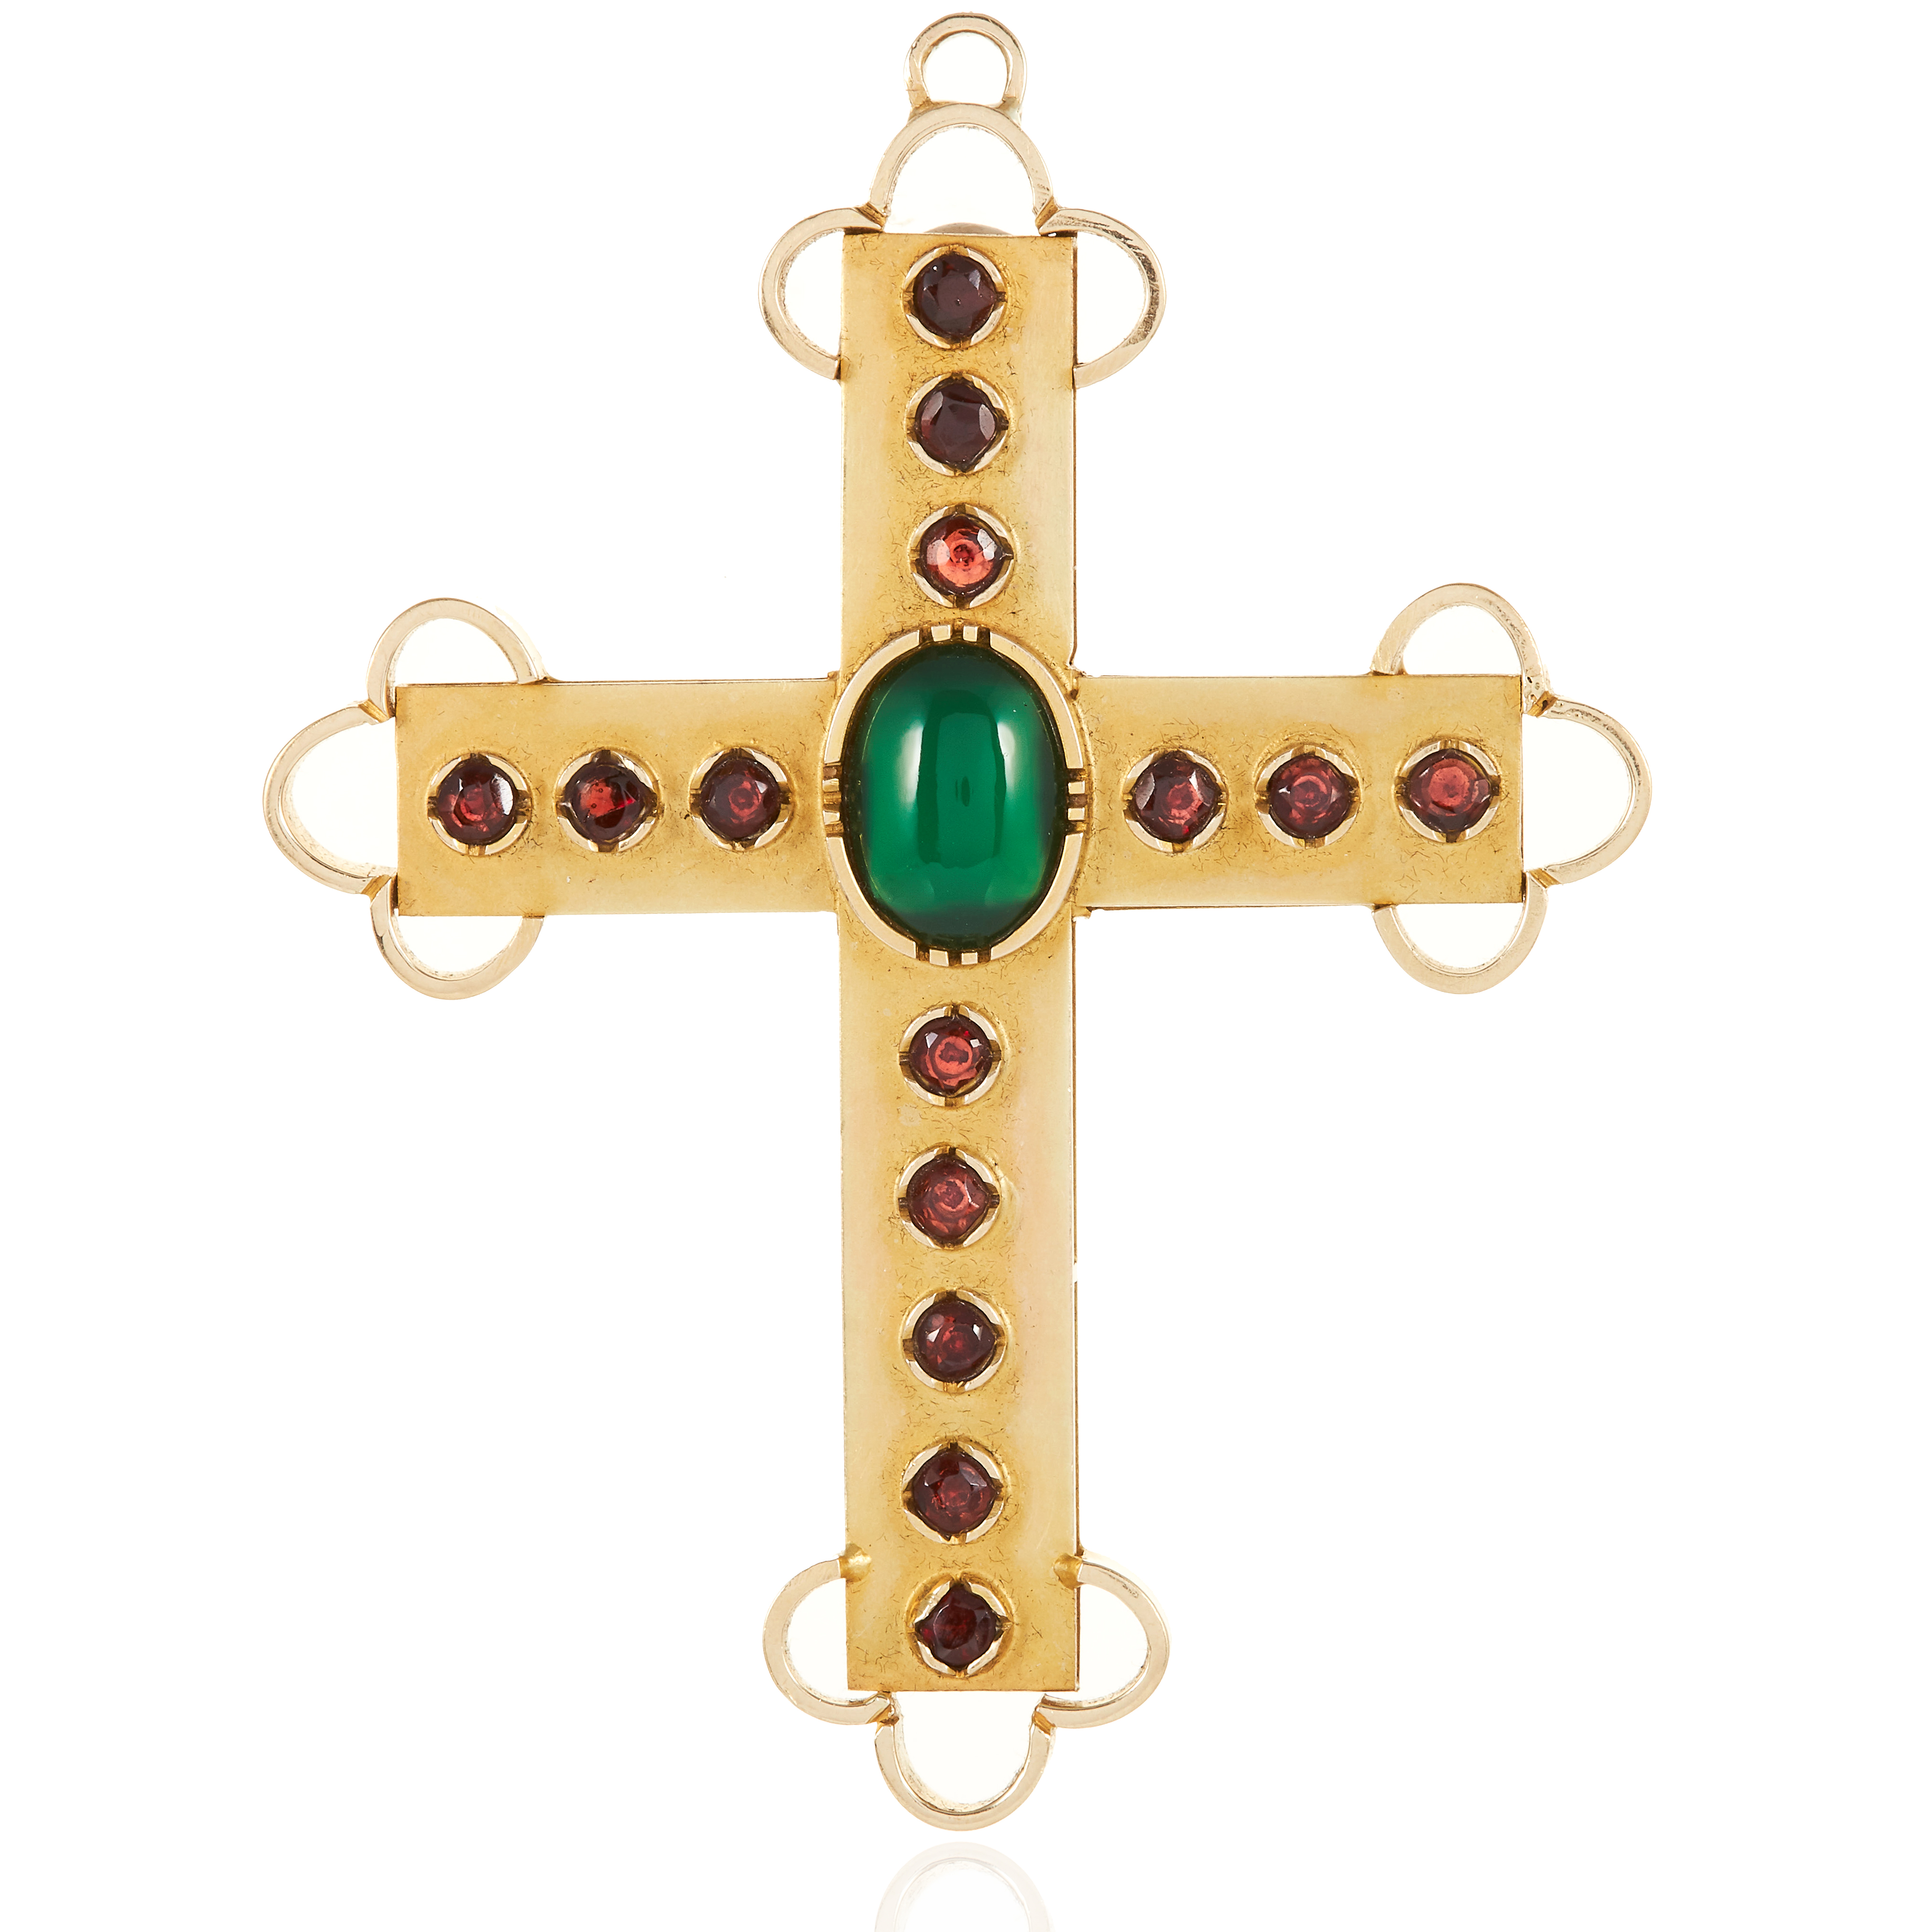 AN ANTIQUE GARNET AND CHRYSOPRASE CROSS PENDANT in yellow gold, set with an oval cabochon